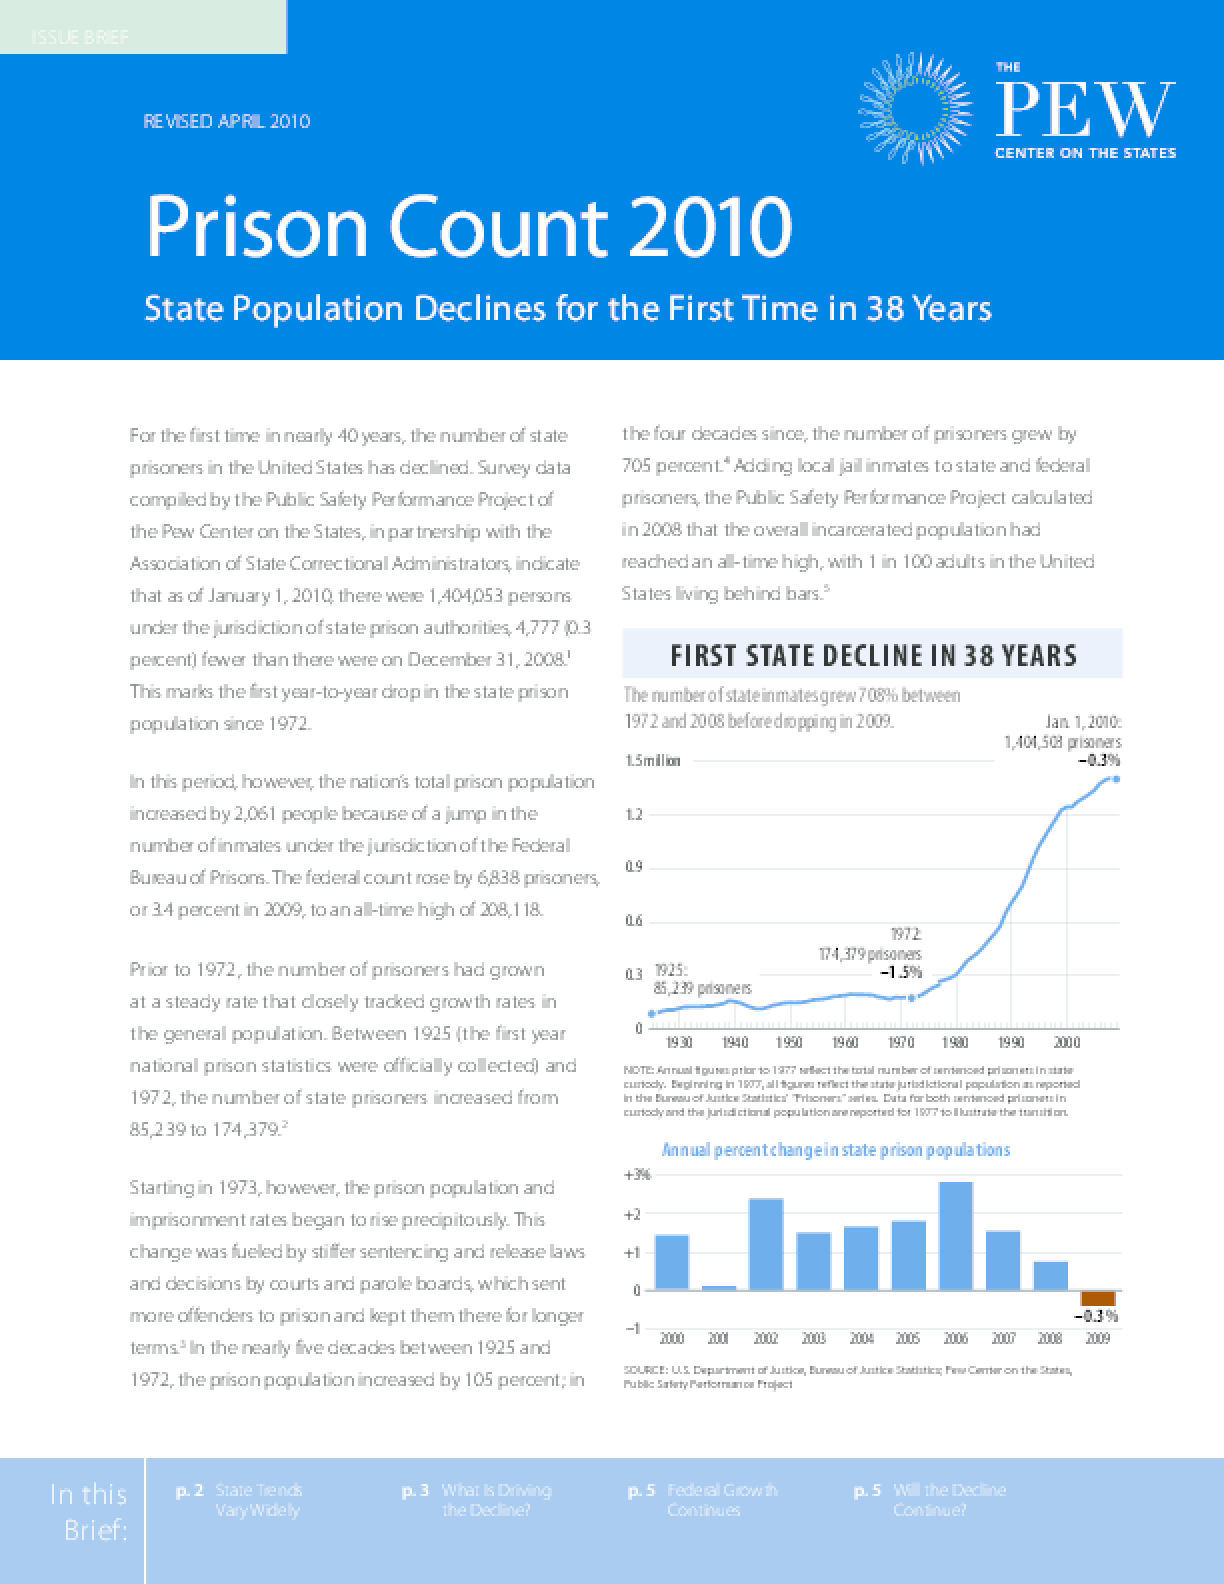 Prison Count 2010: State Population Declines for the First Time in 38 Years